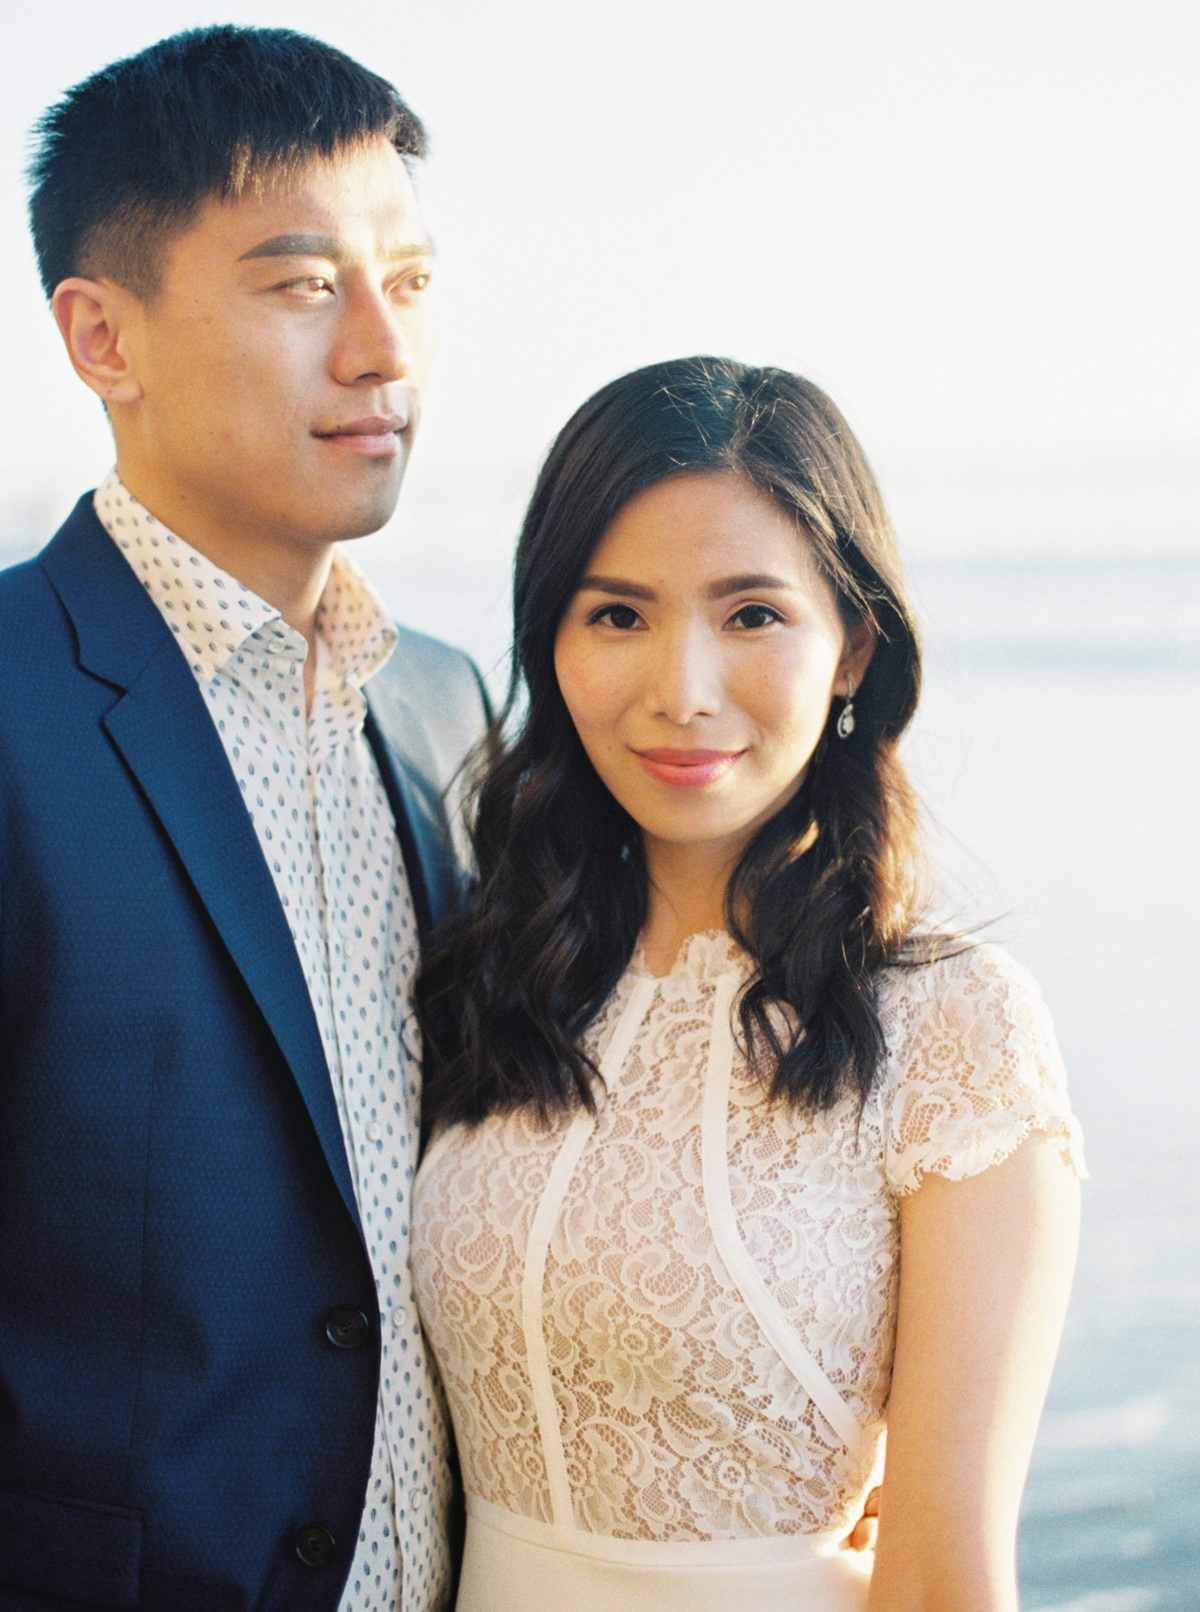 gorgeous asian bride and groom photo by Matoli Keely Photography